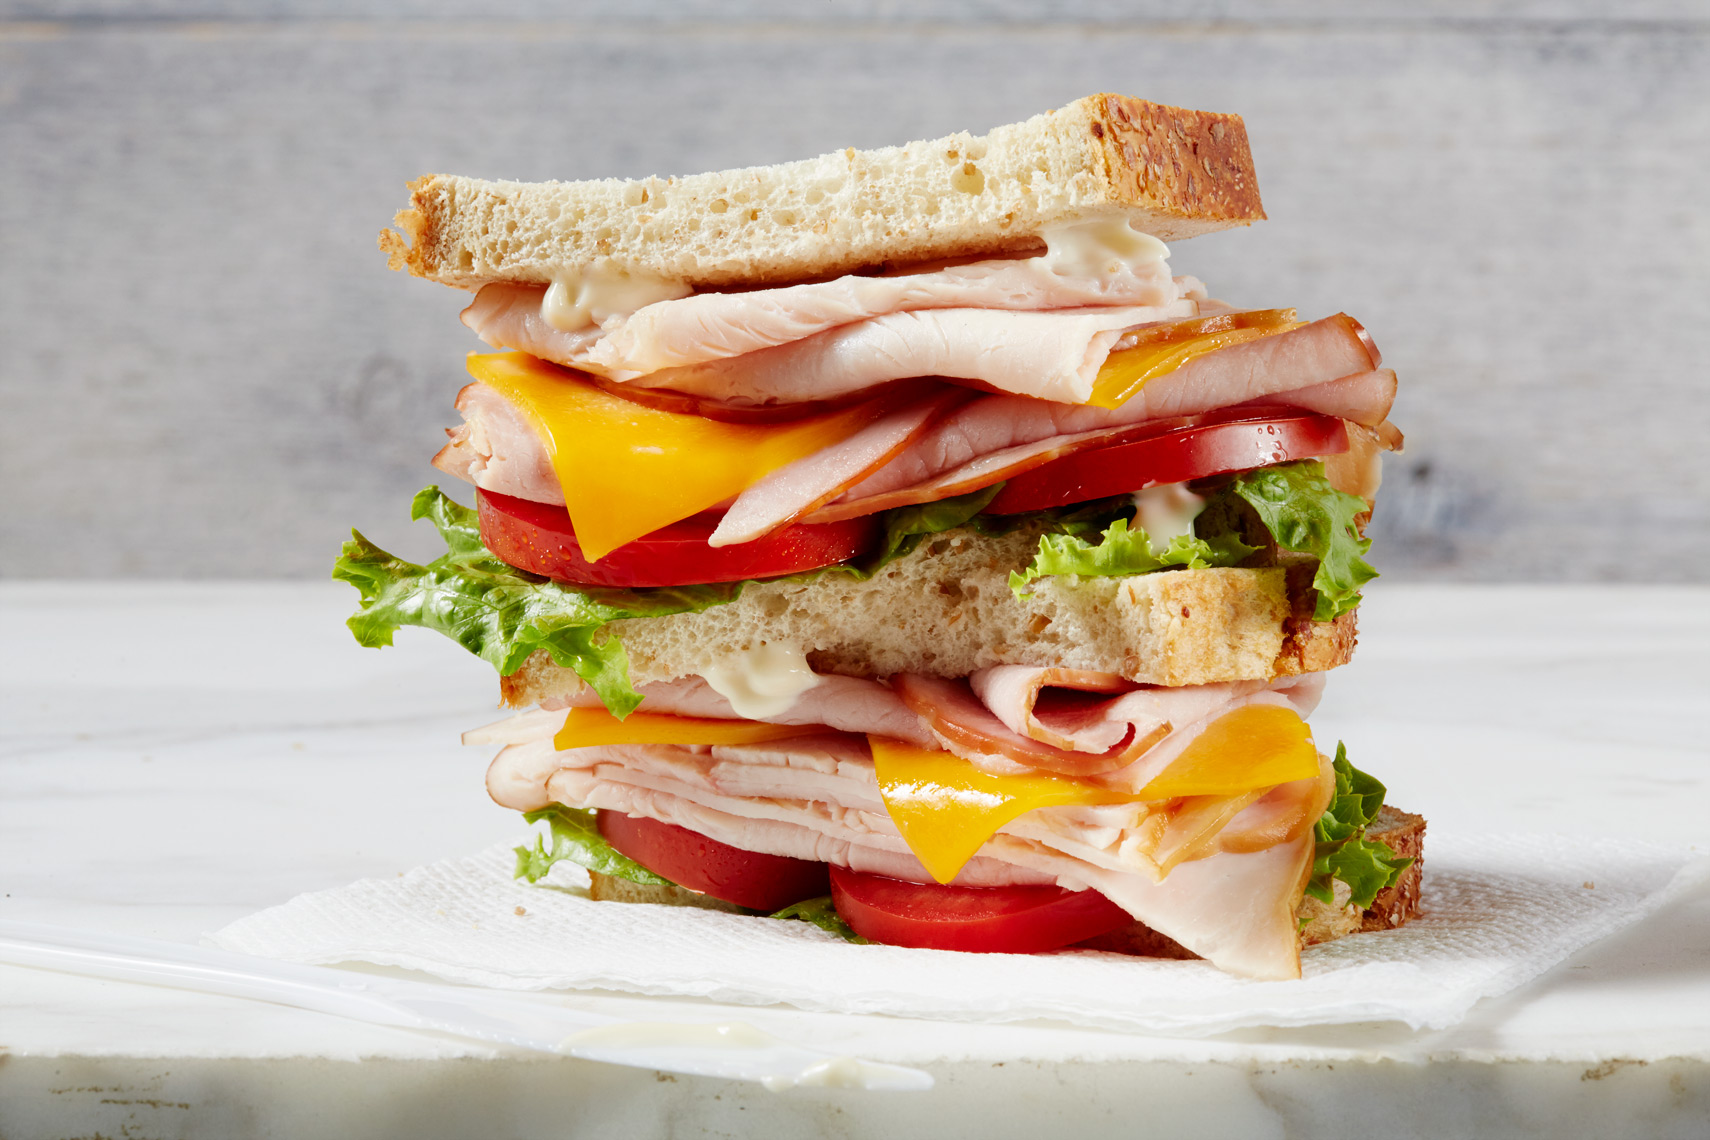 Marx-food-photography-deli-sandwich-cheese-cold_cuts_lunchmeat_turkey